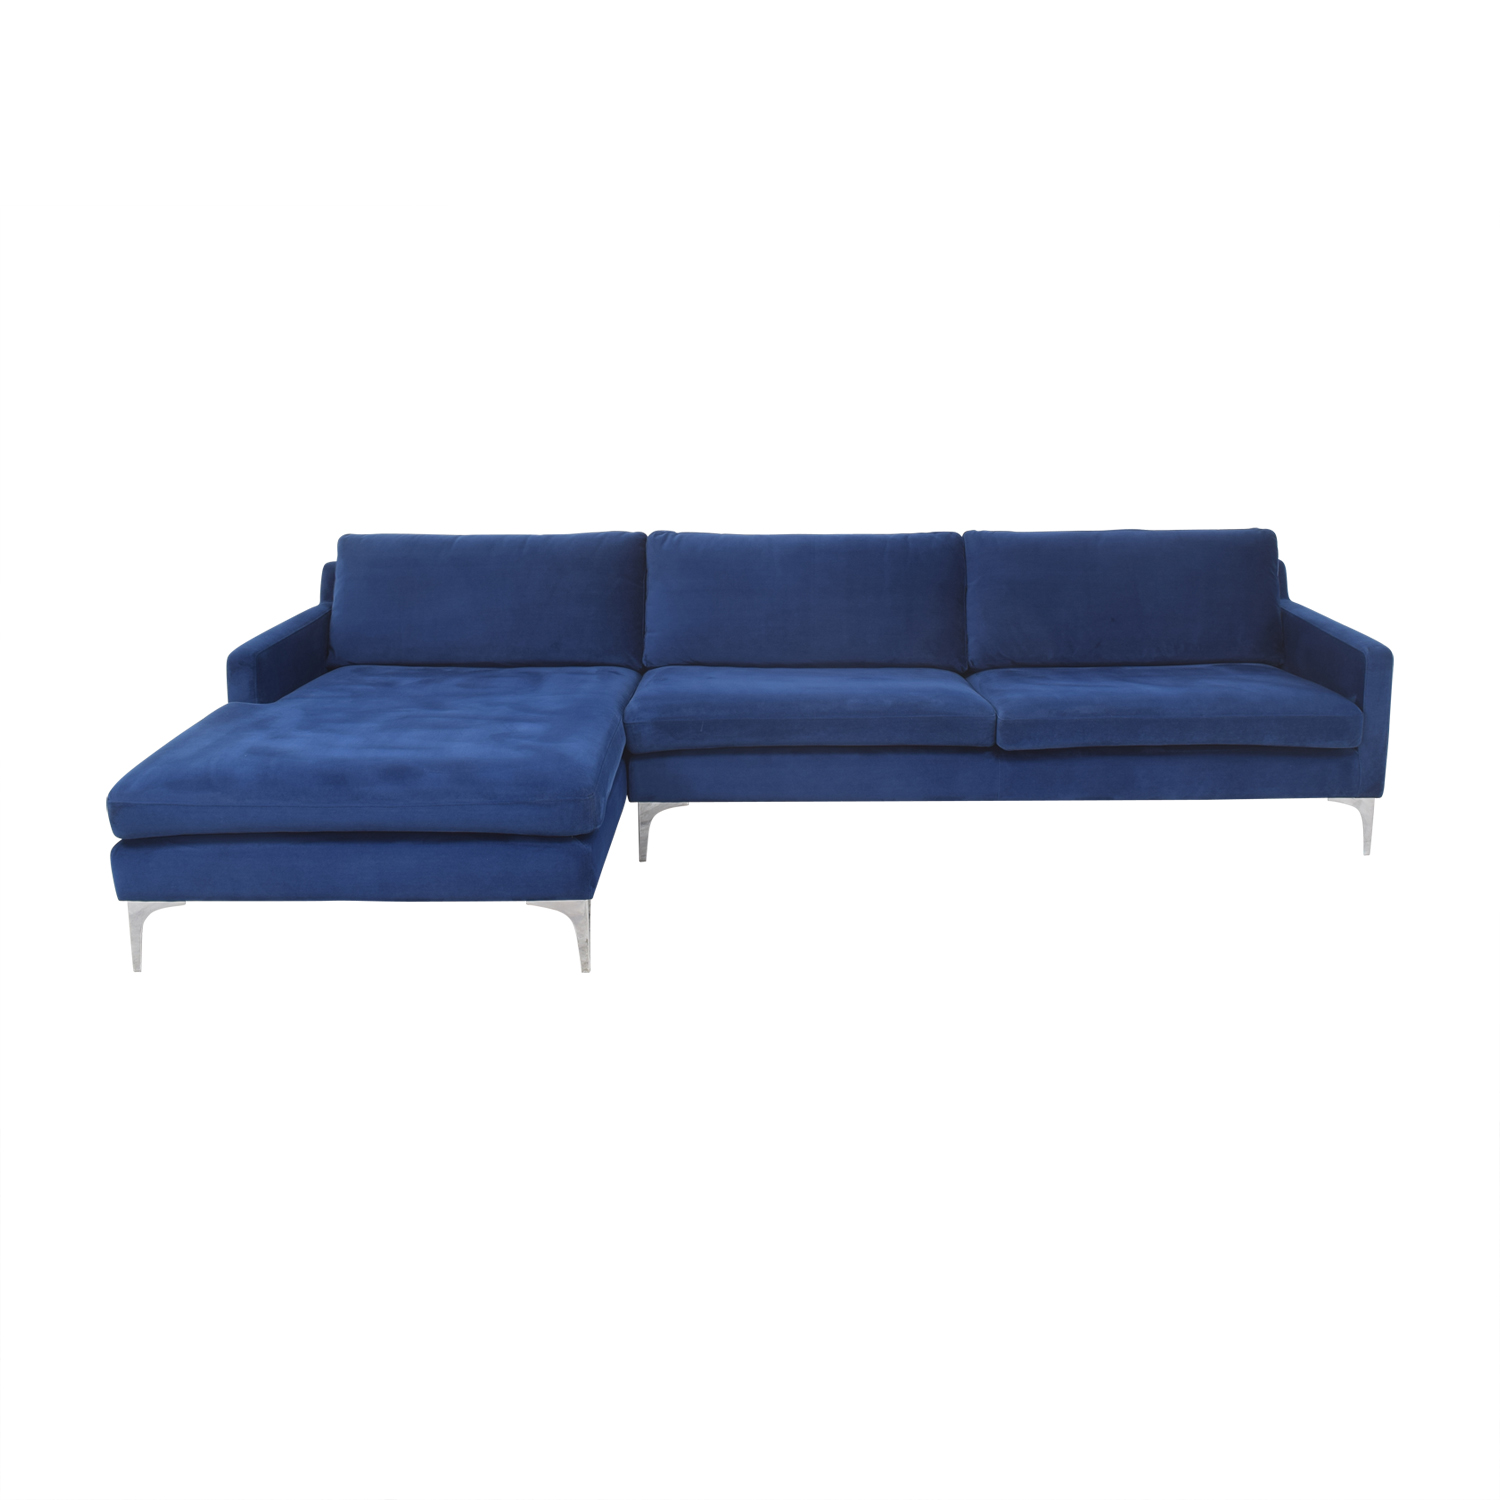 Joss & Main Joss & Main Bridgehampton Chaise Sectional Sofa Sectionals